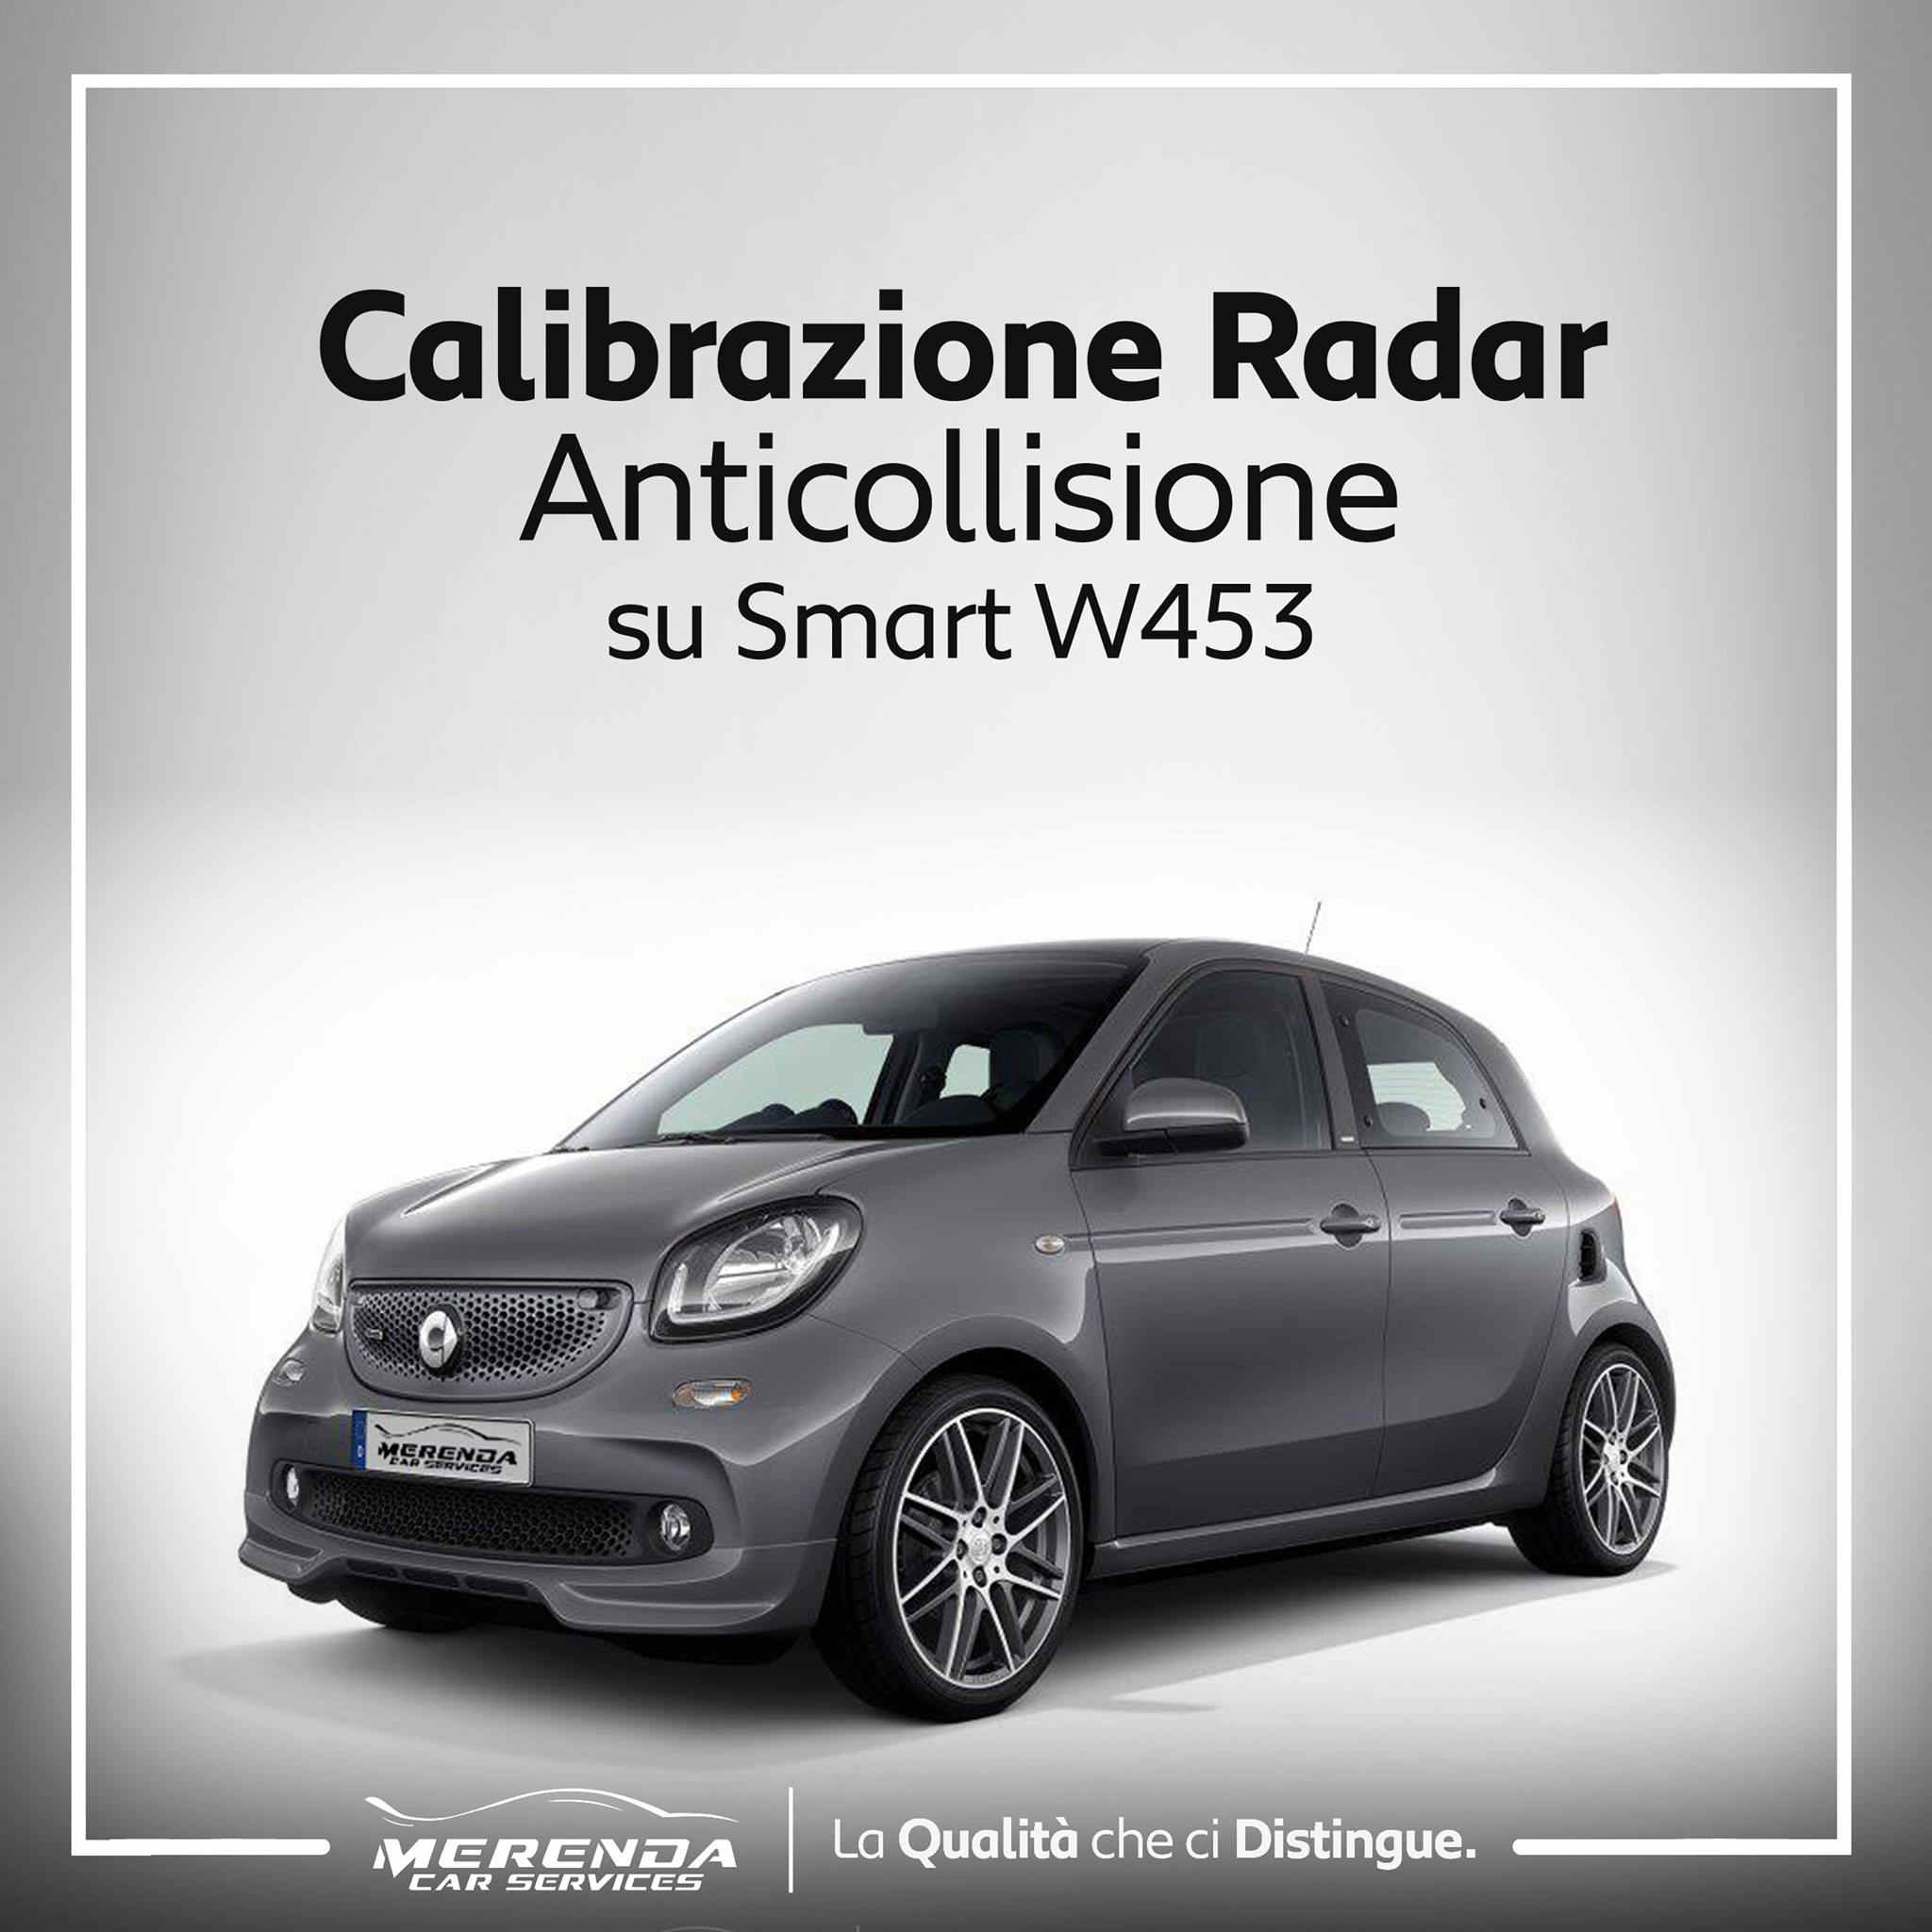 CALIBRAZIONE RADAR ANTICOLLISIONE SU SMART W453